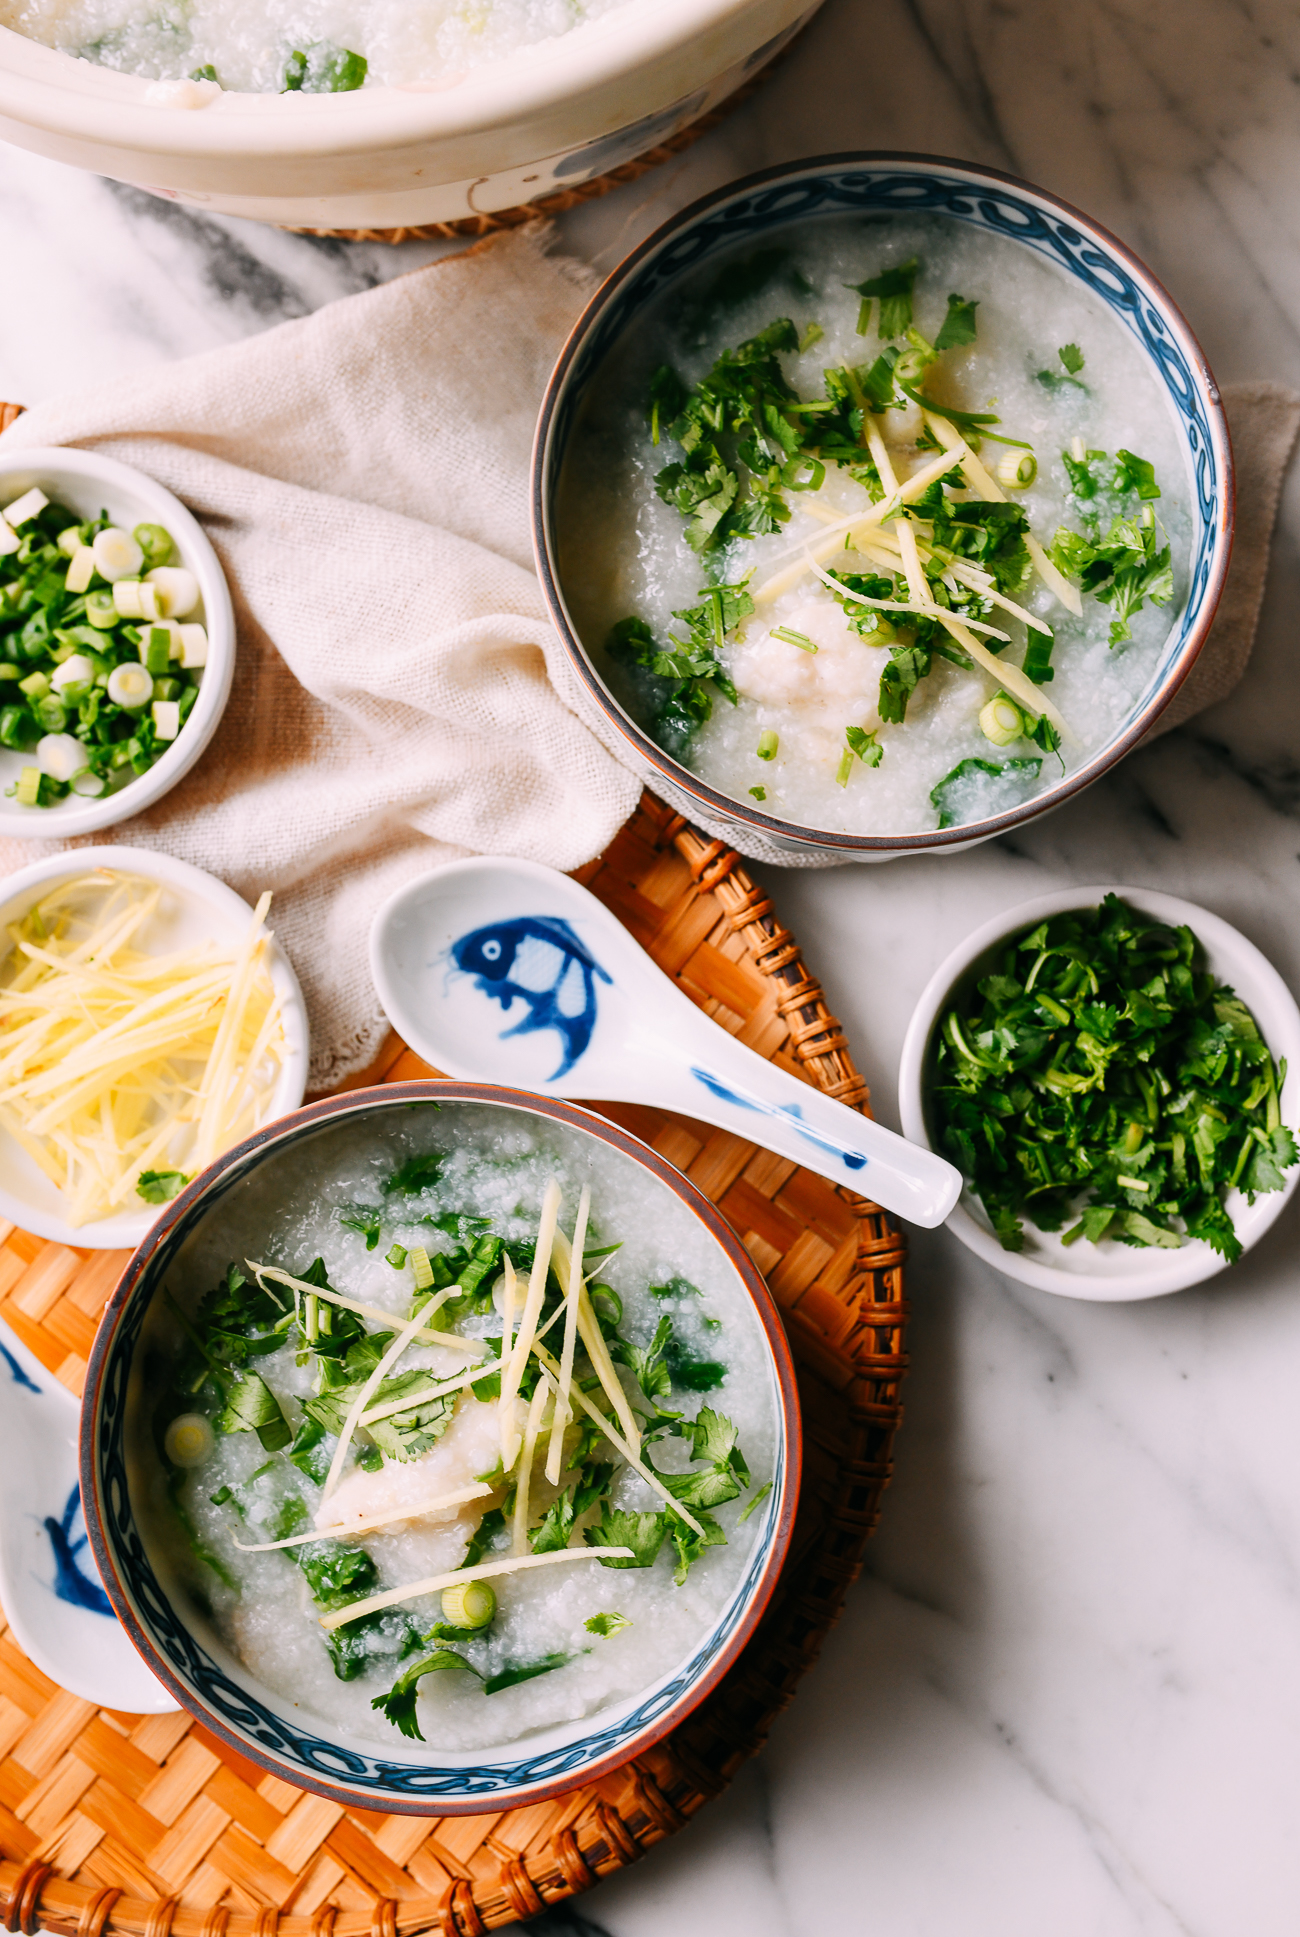 Bowls of fish congee